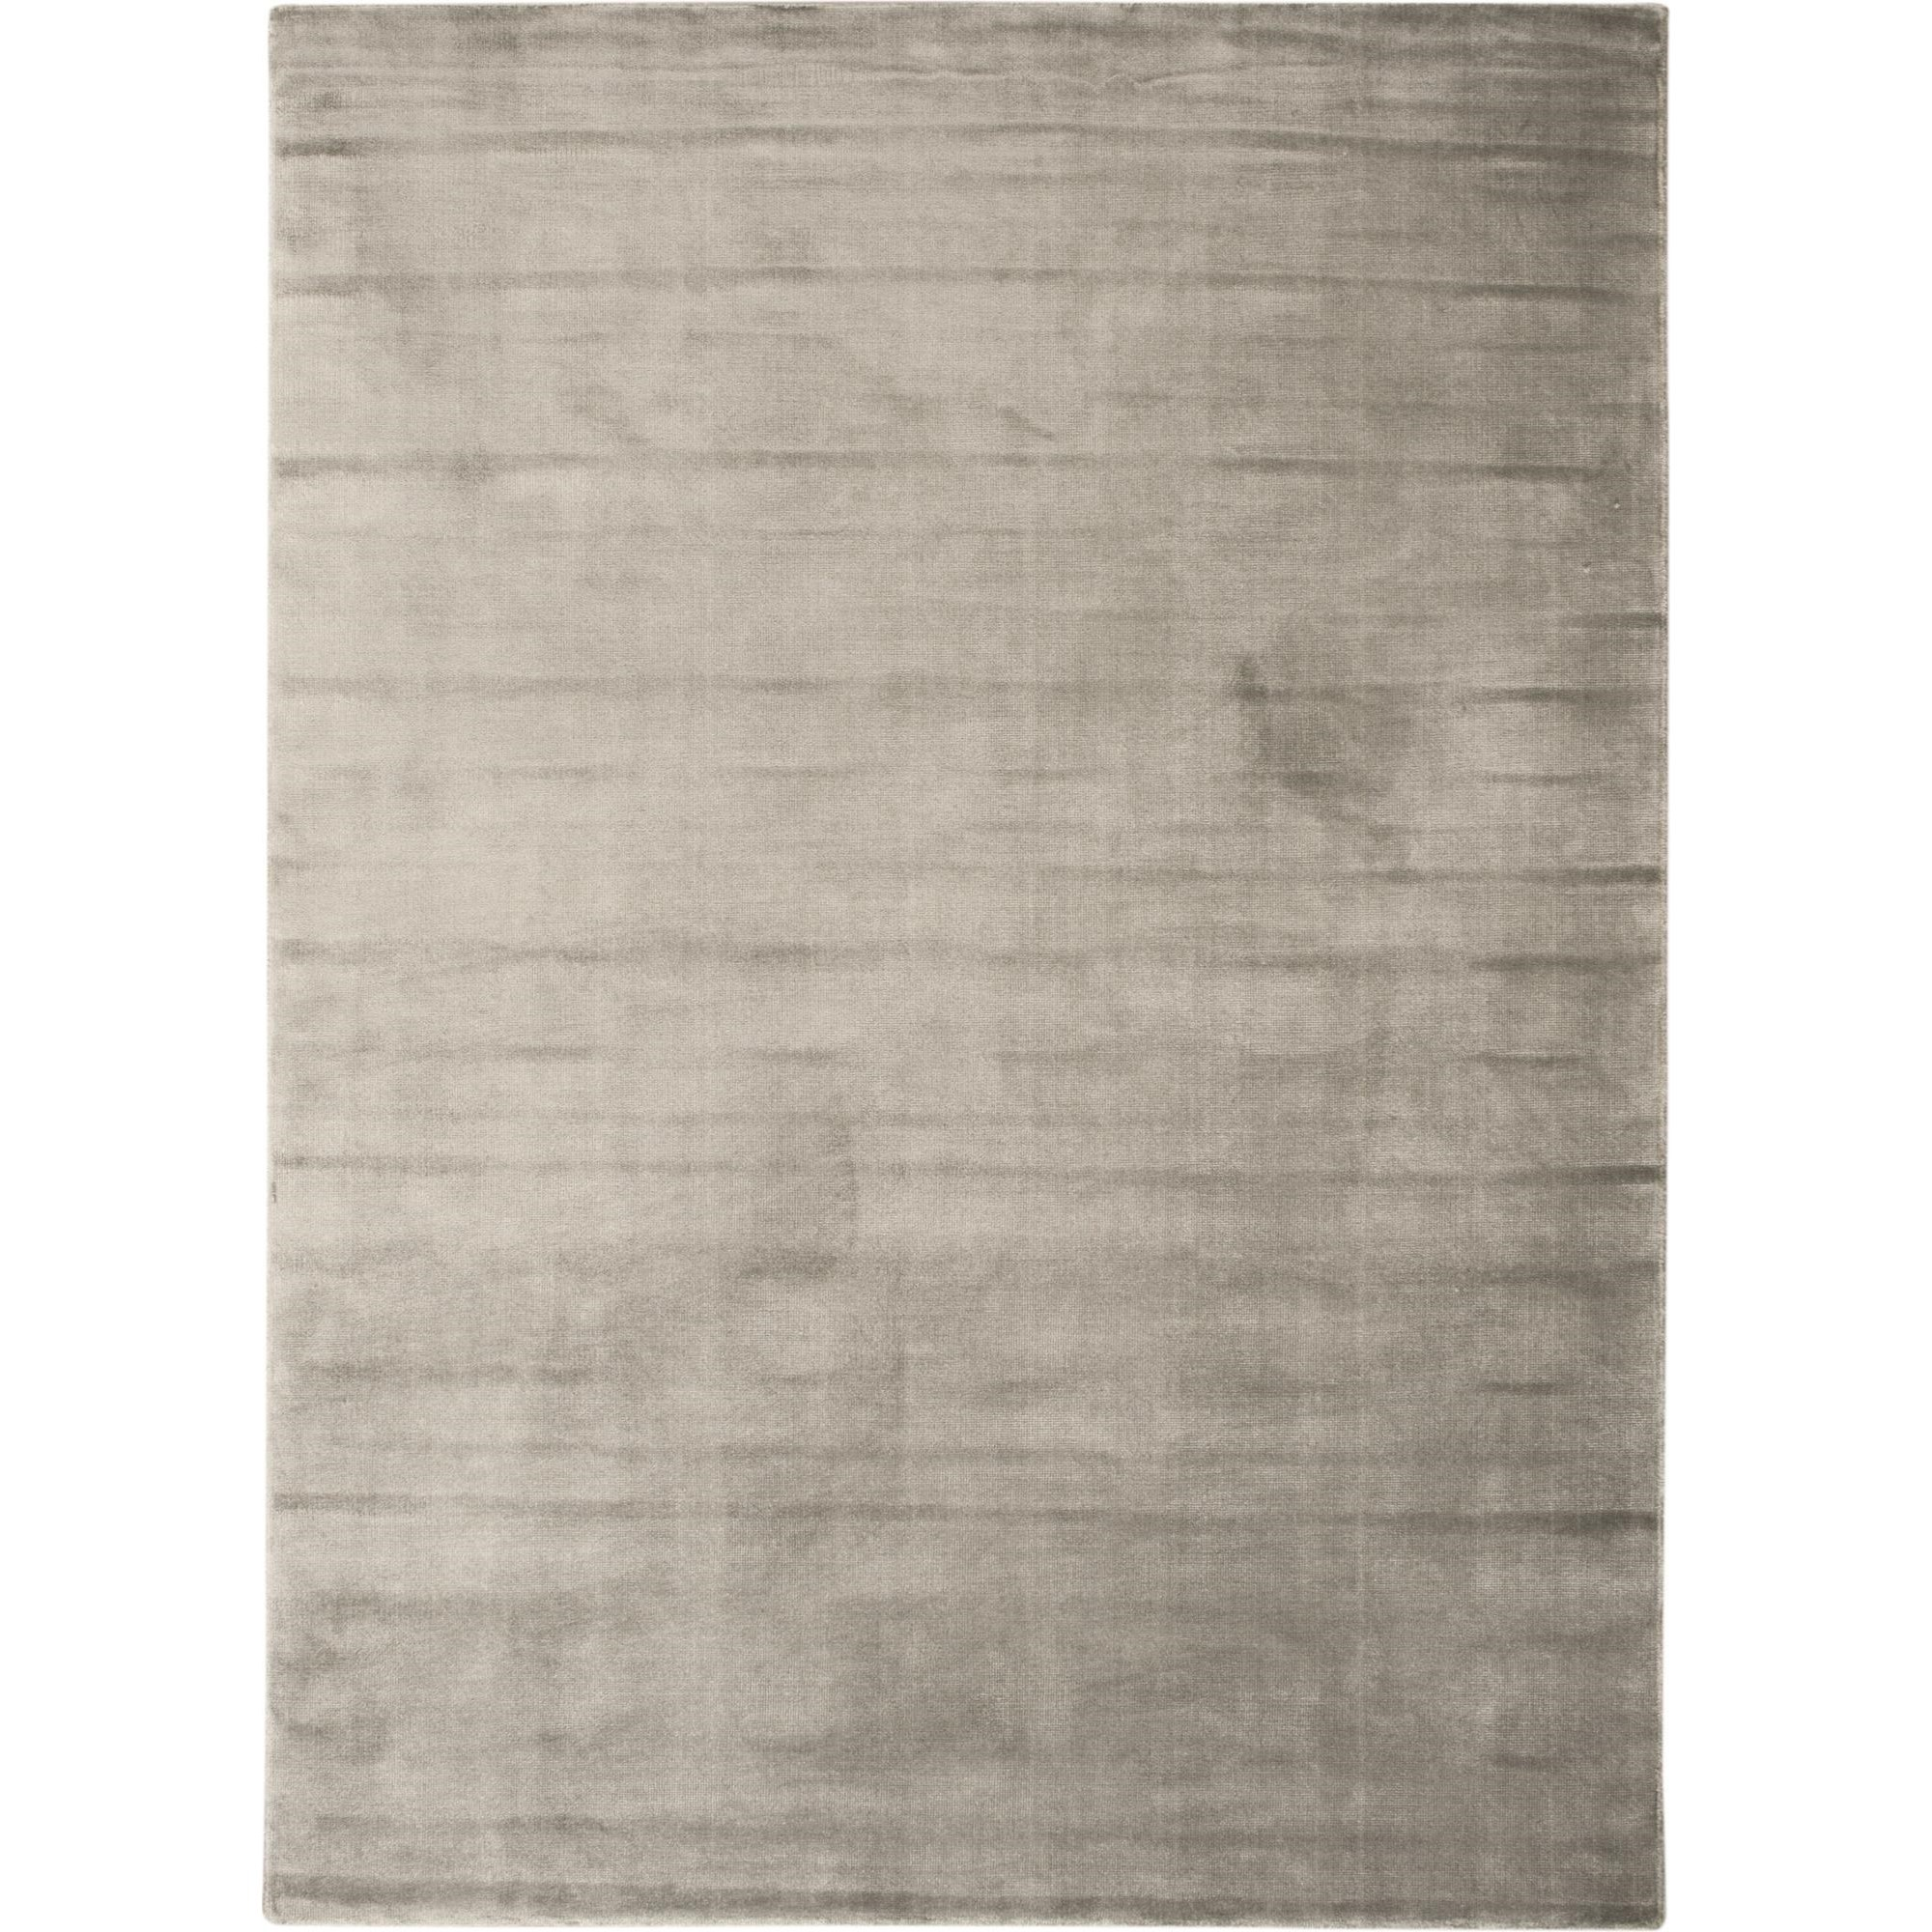 "Nourison Starlight 3'5"" x 5'5"" Pewter Area Rug - Item Number: 22529"